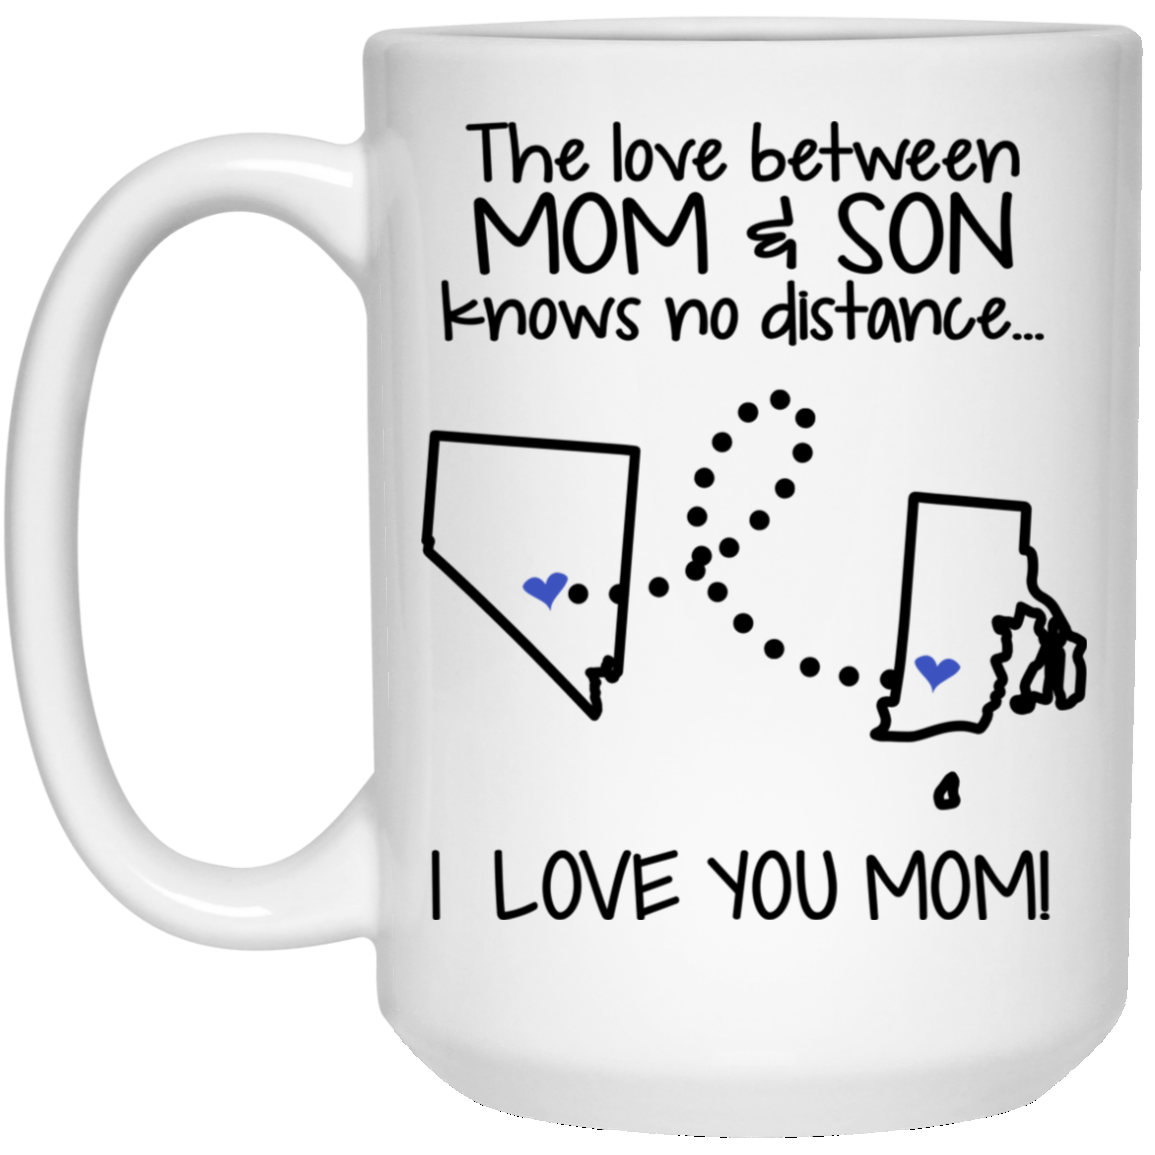 RHODE ISLAND NEVADA THE LOVE BETWEEN MOM AND SON